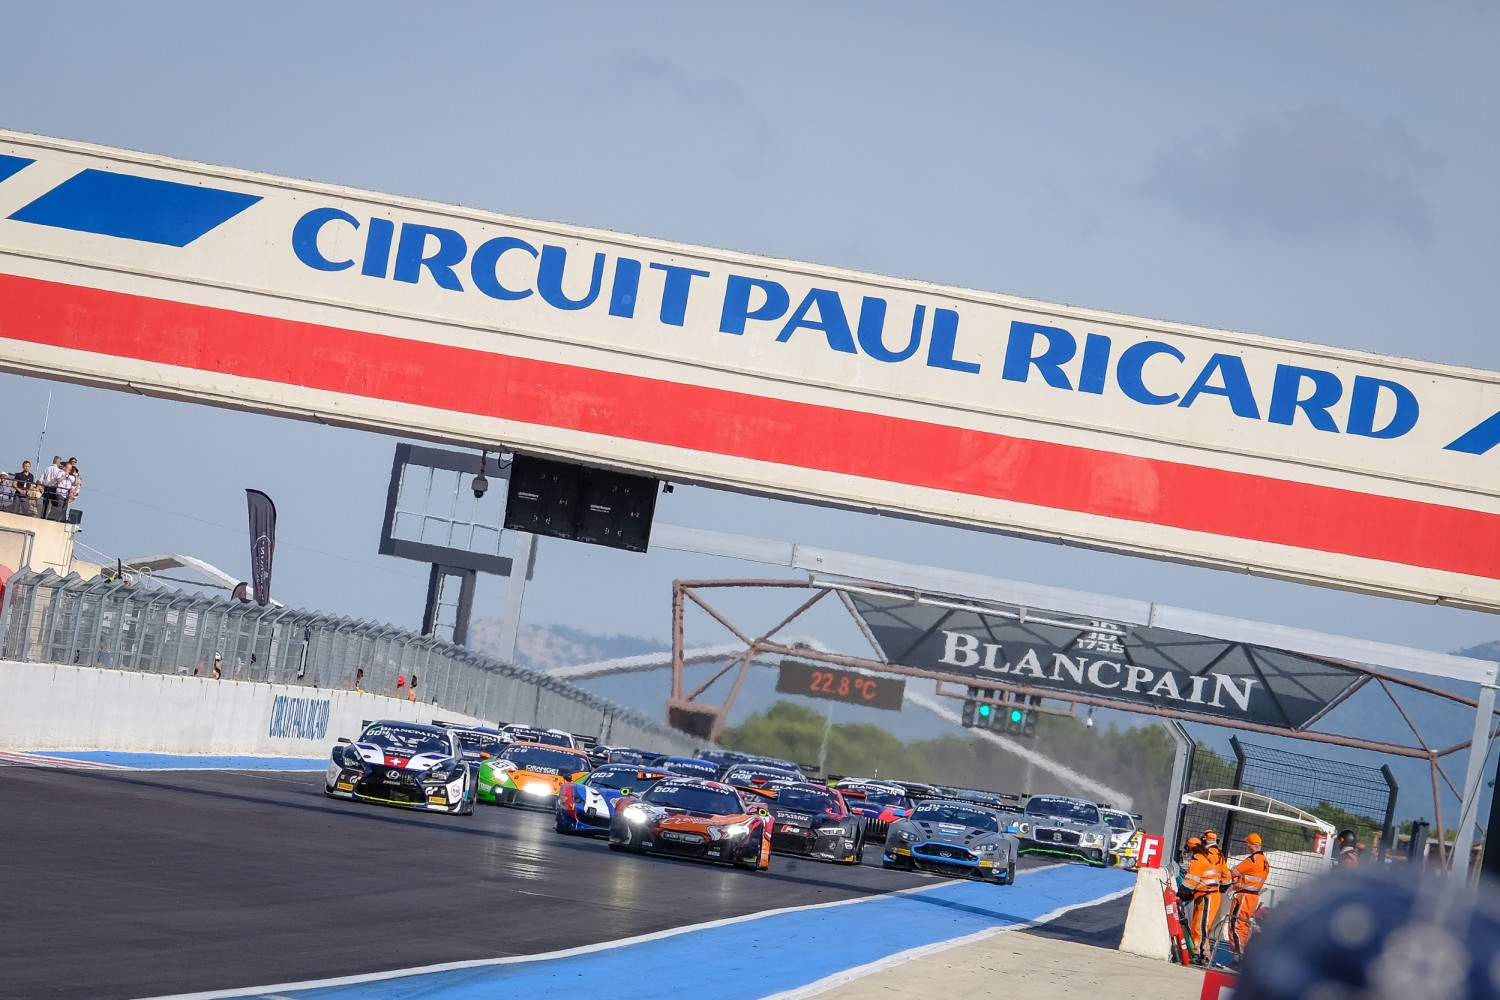 Emil Frey Lexus Racing snatches dramatic maiden victory with final-lap pass at Circuit Paul Ricard 1000km